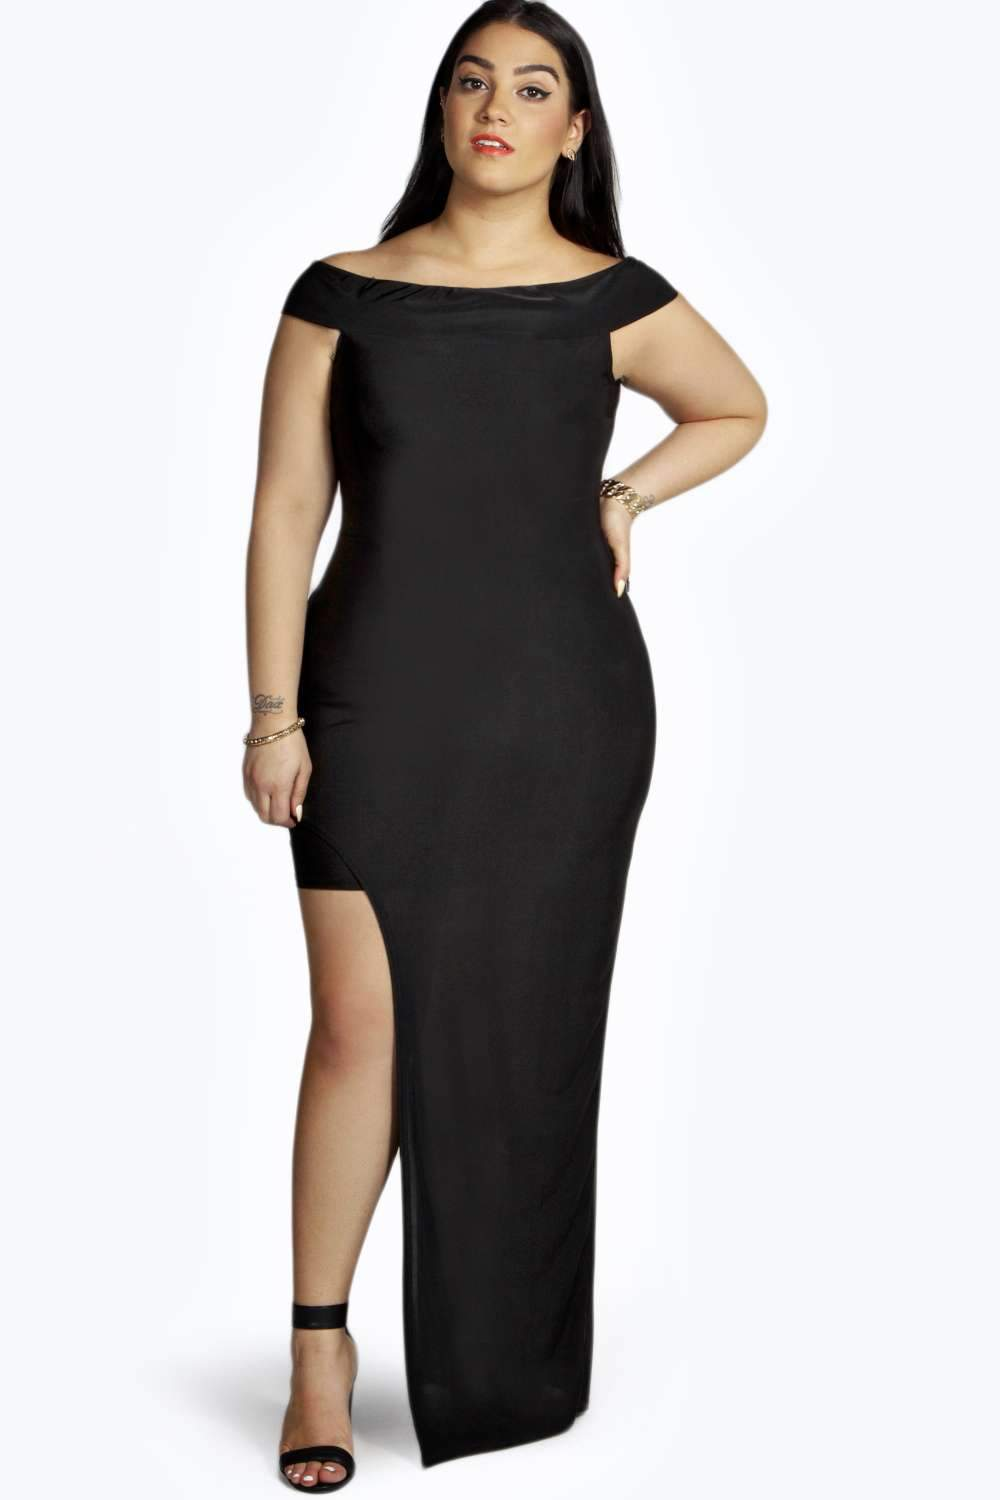 Tcfstyle Find 10 Plus Size Wedding Guest Dresses